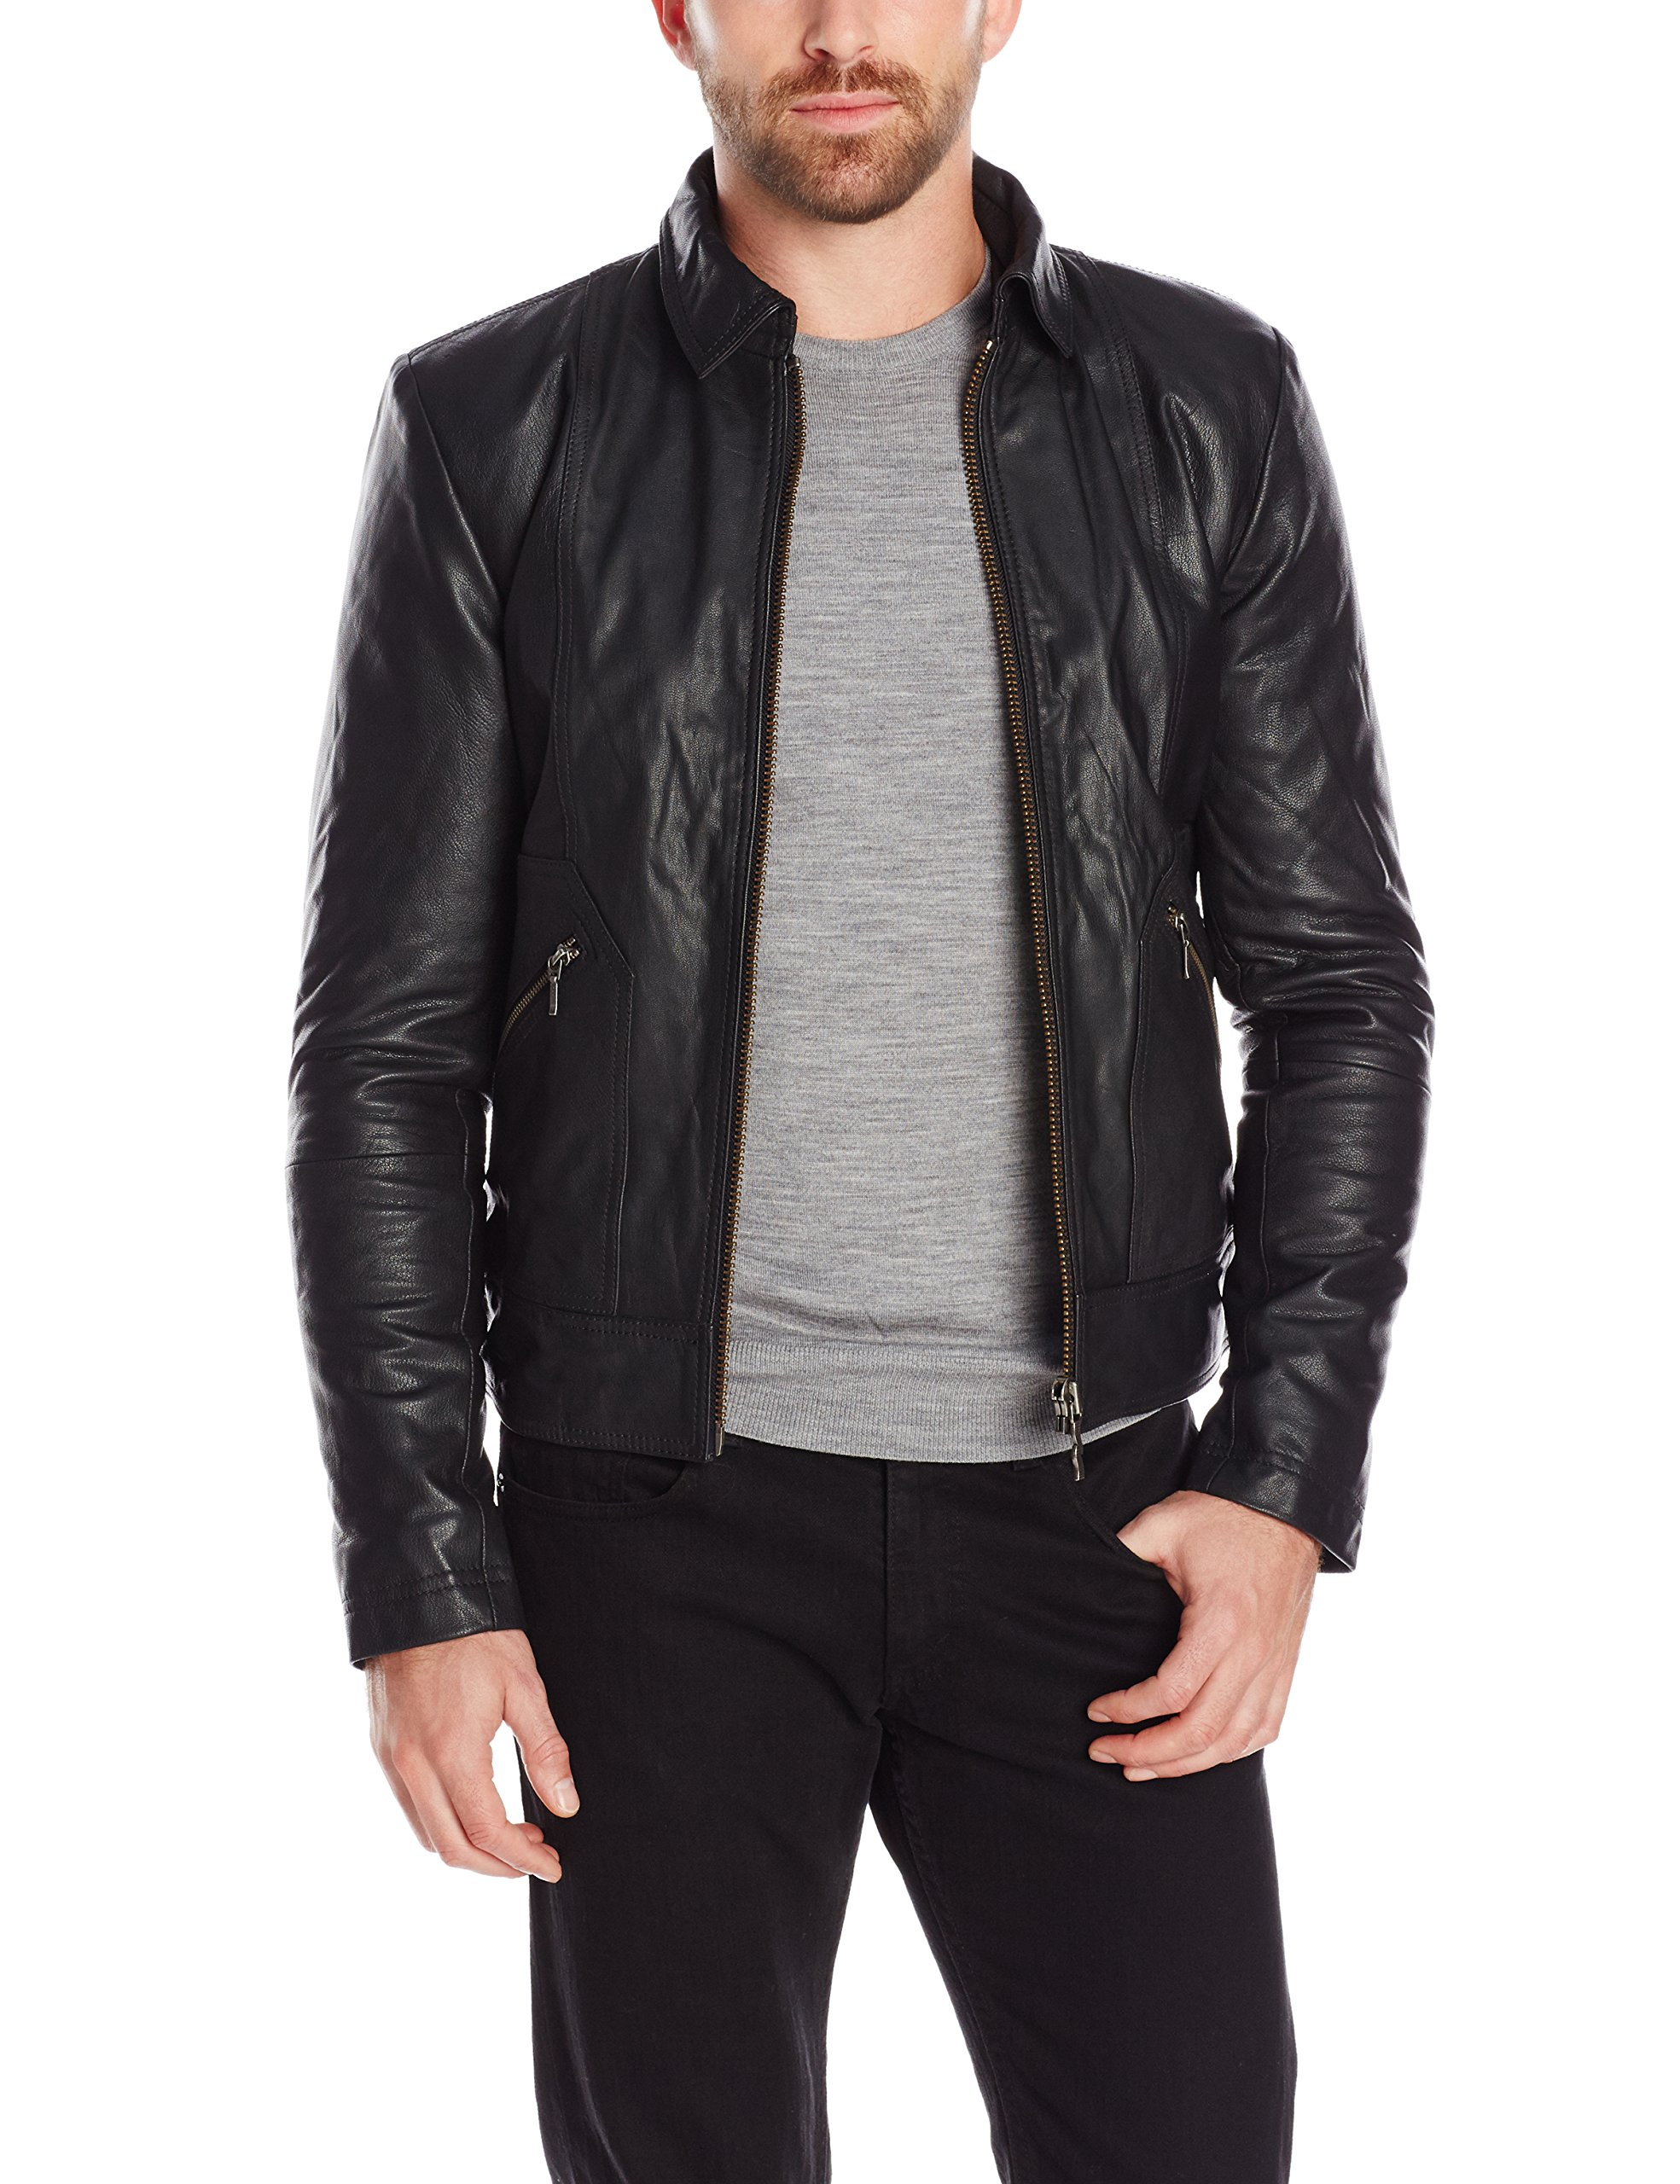 Nudie jeans jonny leather jacket